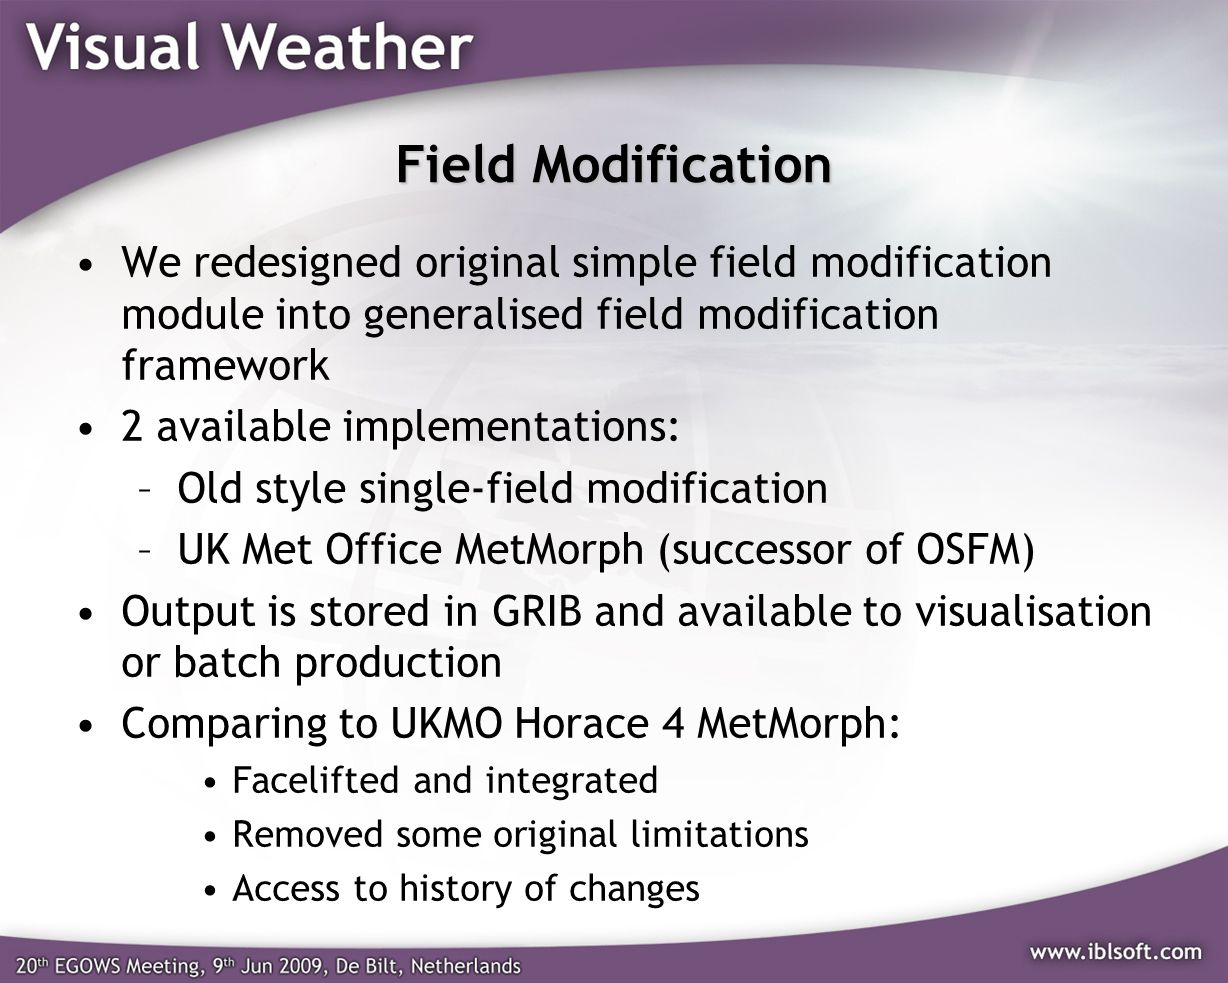 Field Modification We redesigned original simple field modification module into generalised field modification framework 2 available implementations: –Old style single-field modification –UK Met Office MetMorph (successor of OSFM) Output is stored in GRIB and available to visualisation or batch production Comparing to UKMO Horace 4 MetMorph: Facelifted and integrated Removed some original limitations Access to history of changes